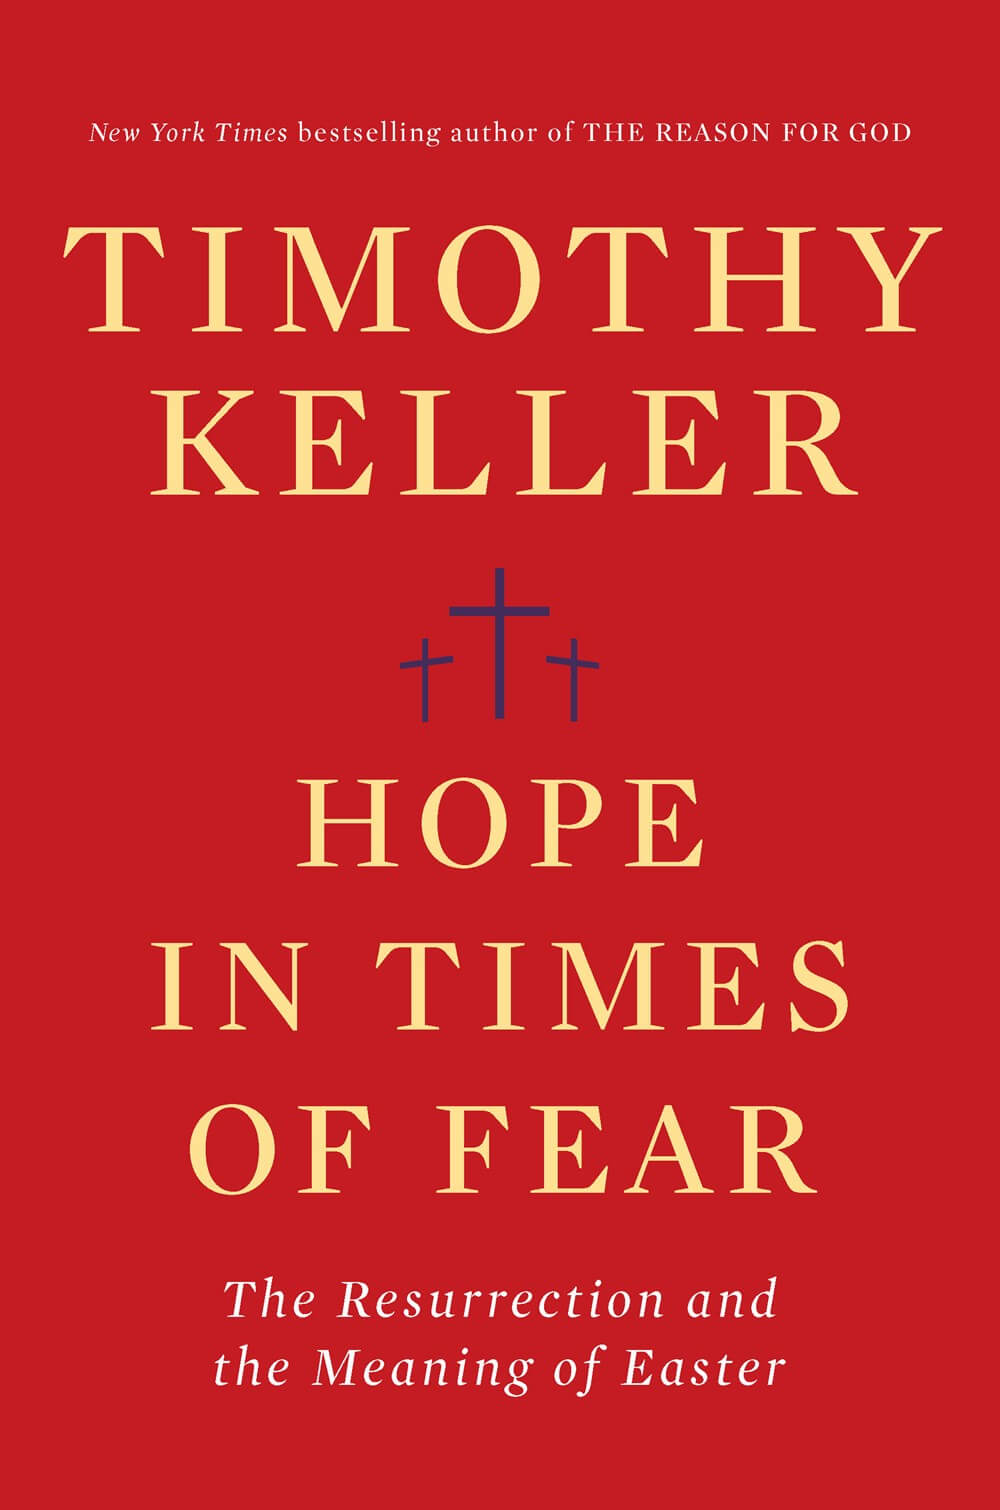 Hope in Times of Fear